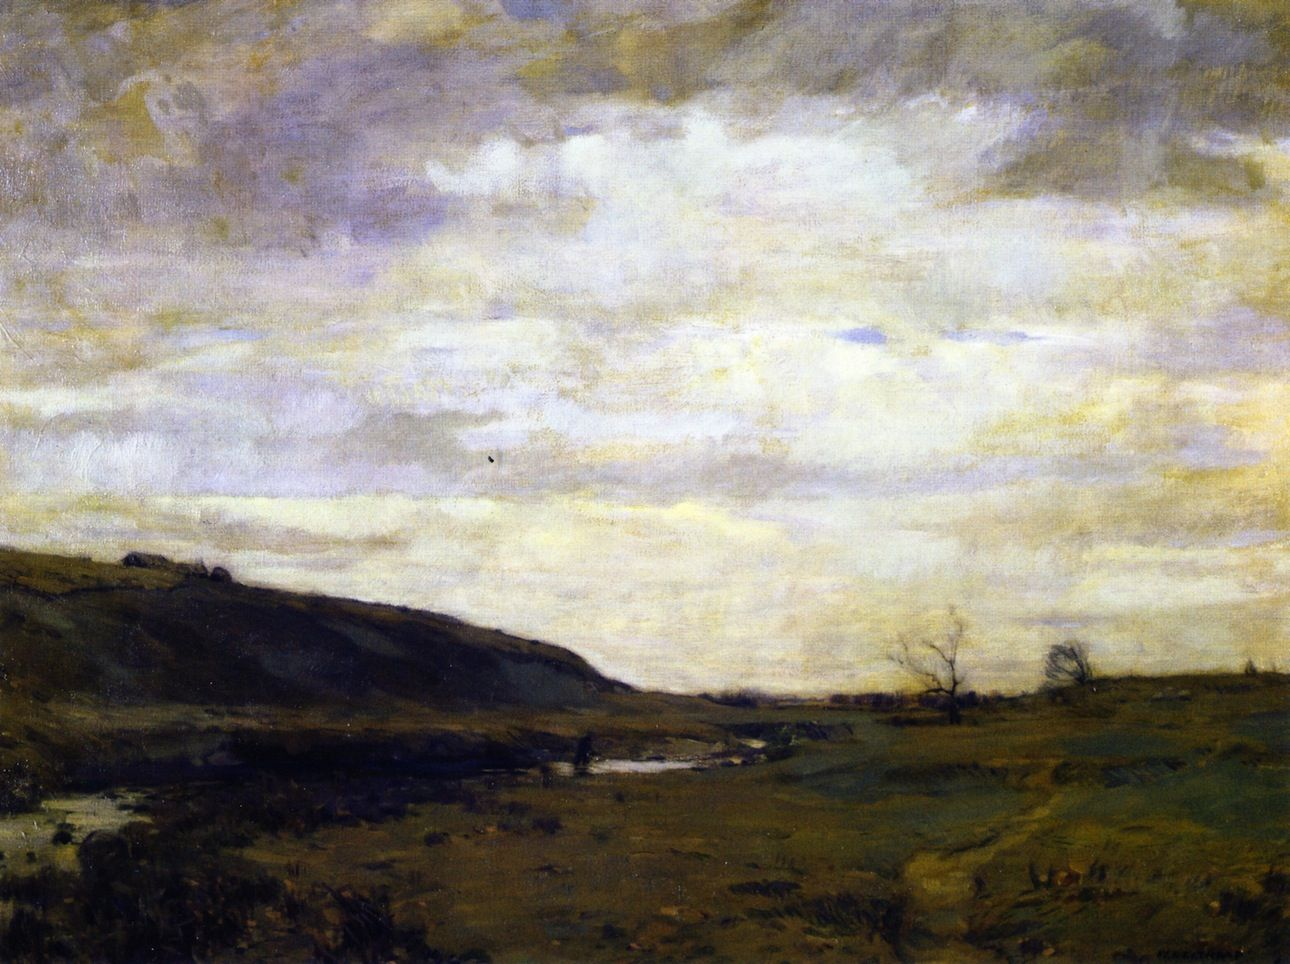 """The Muskrat Hunter,"" William Langson Lathrop, 1908, oil on canvas, 43 x 53"", Reading Public Museum."